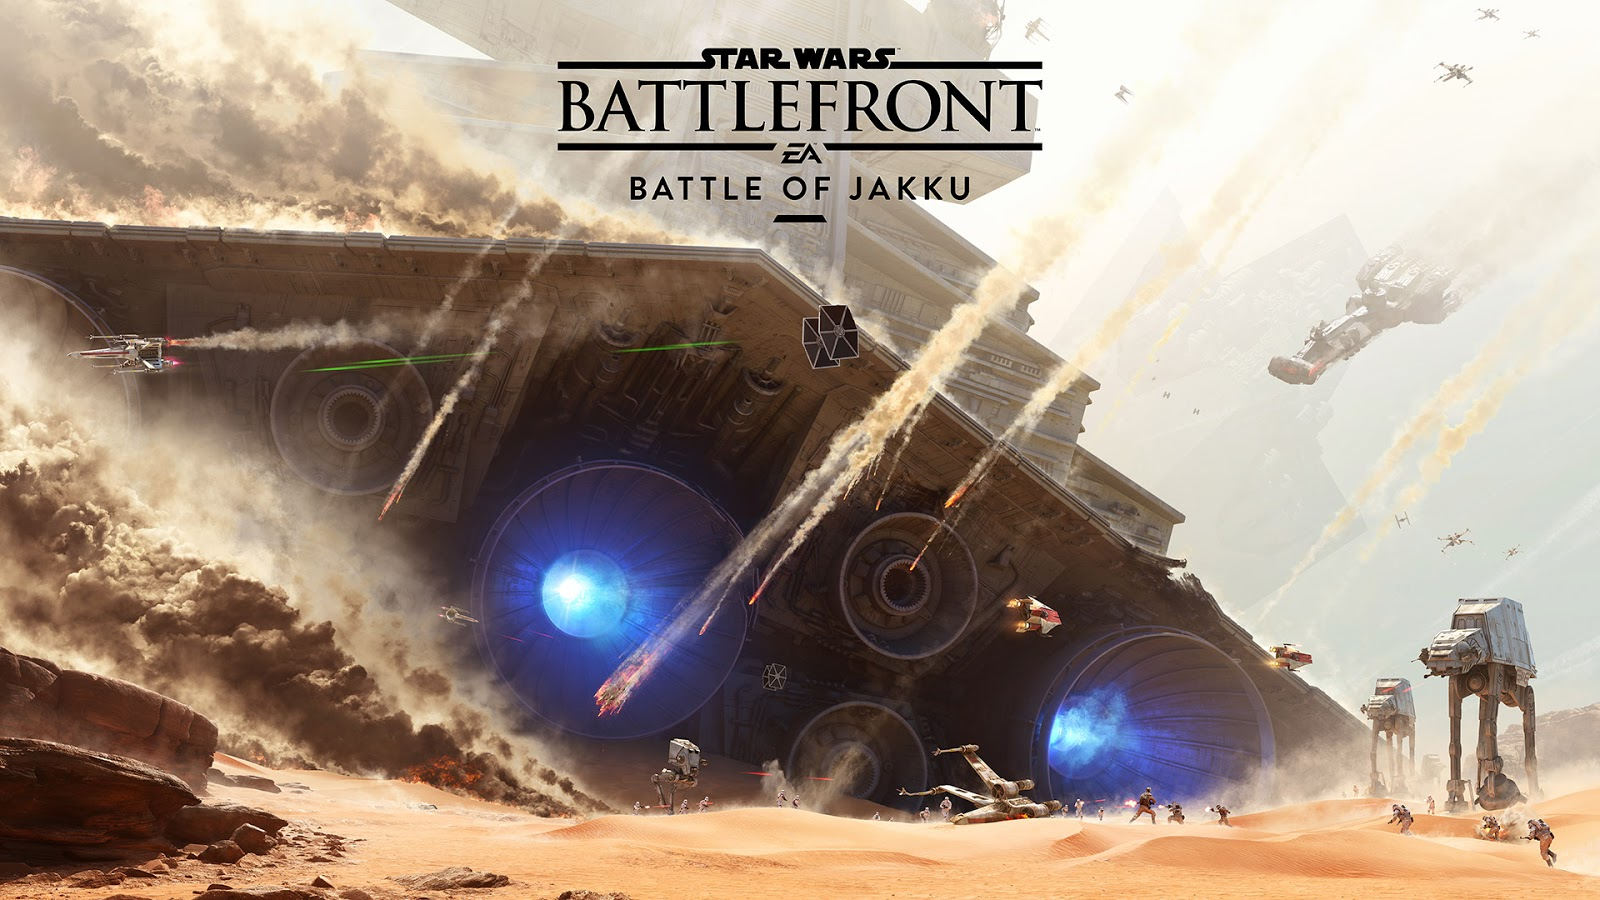 DICE detalha o DLC Battle of Jakku para Star Wars: Battlefront